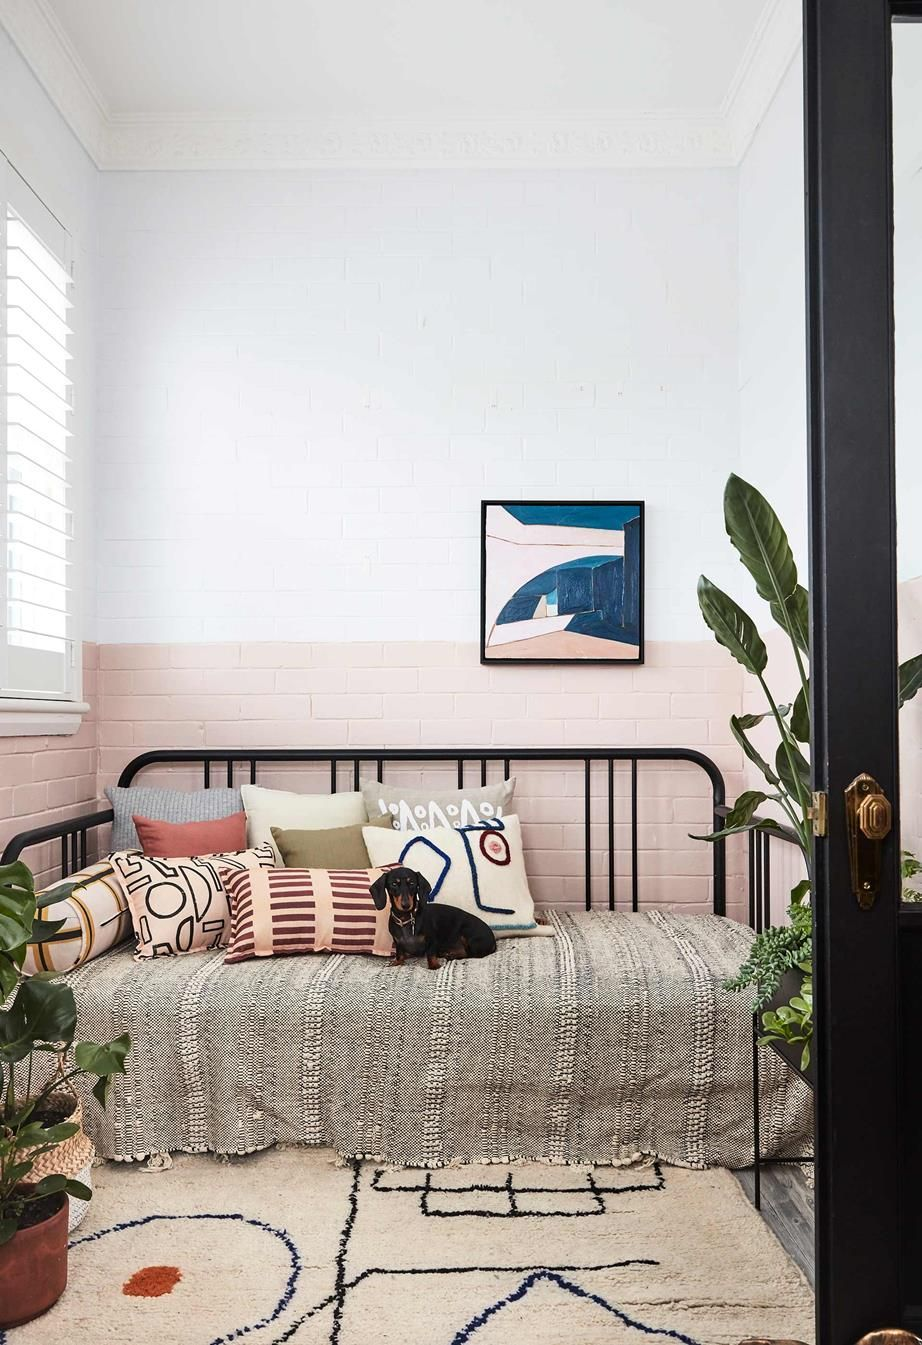 The 12 best sofa beds in Australia and how to choose one